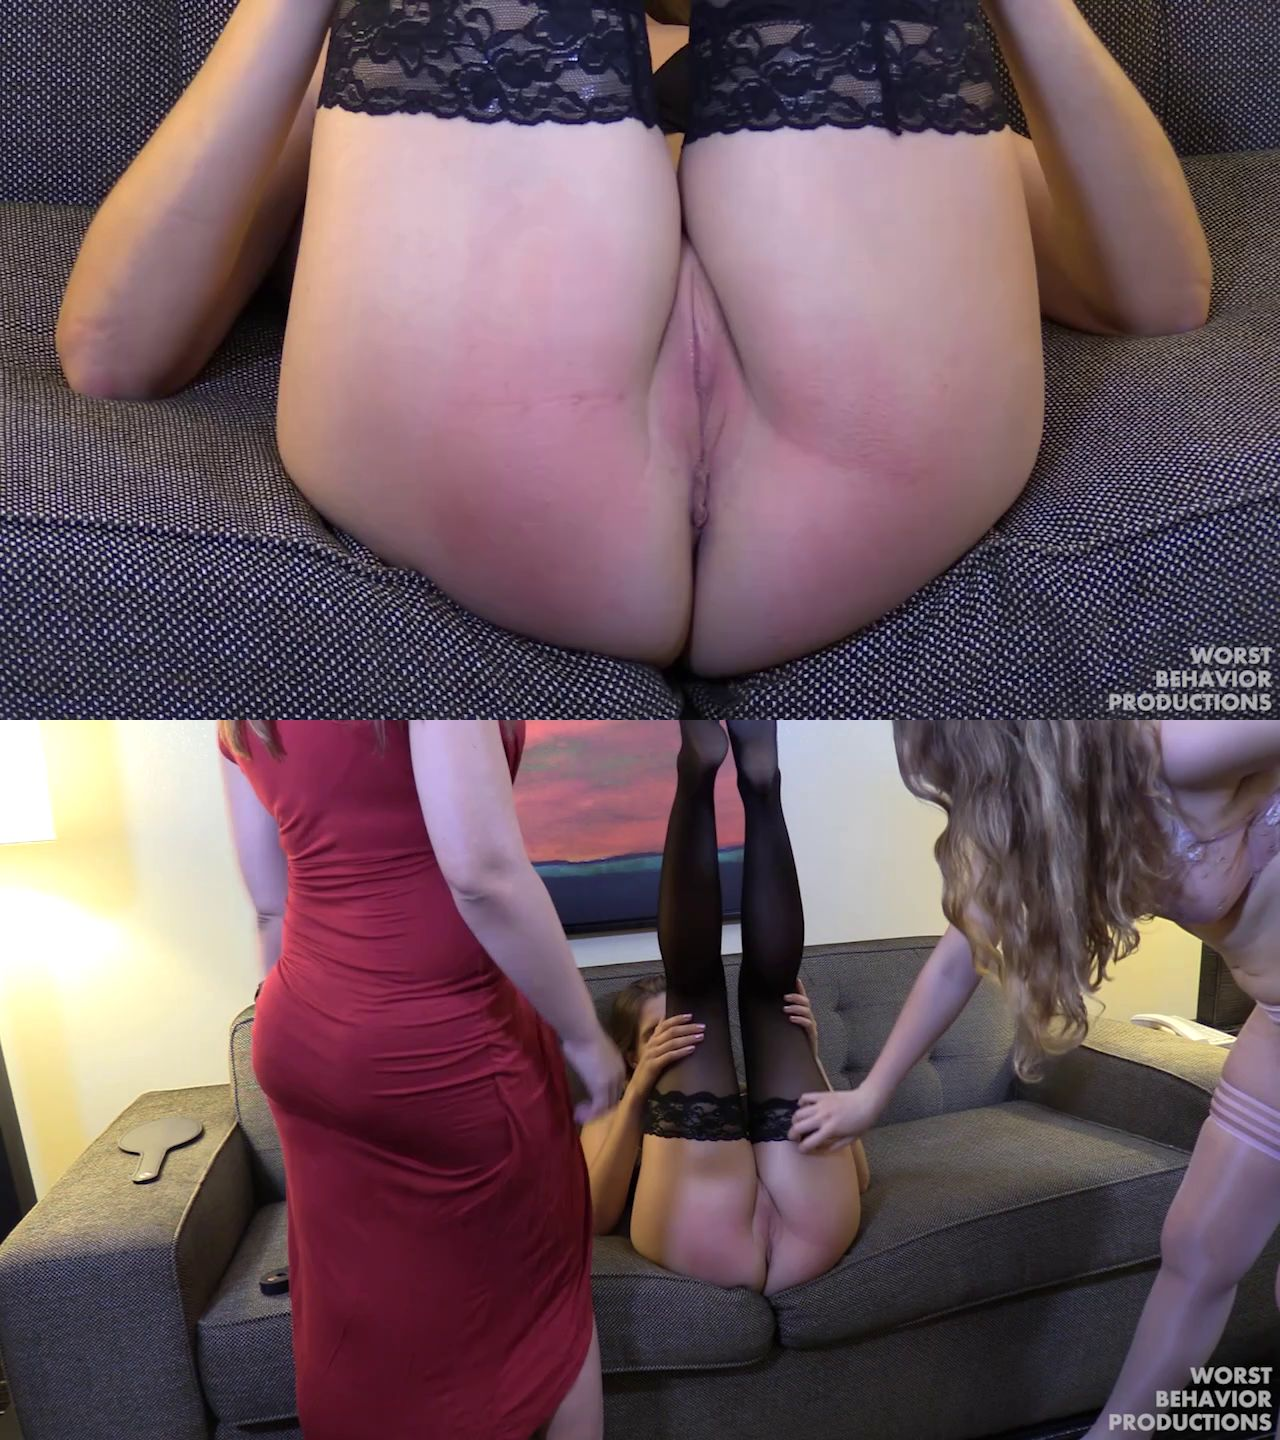 Worst Behavior Productions – MP4/HD – Apricot Pitts, Reyna St Clair, Adriana Evans -Reyna Strapped in Diaper, Apricot Spanked and Paddled – She Lost the Bet Three